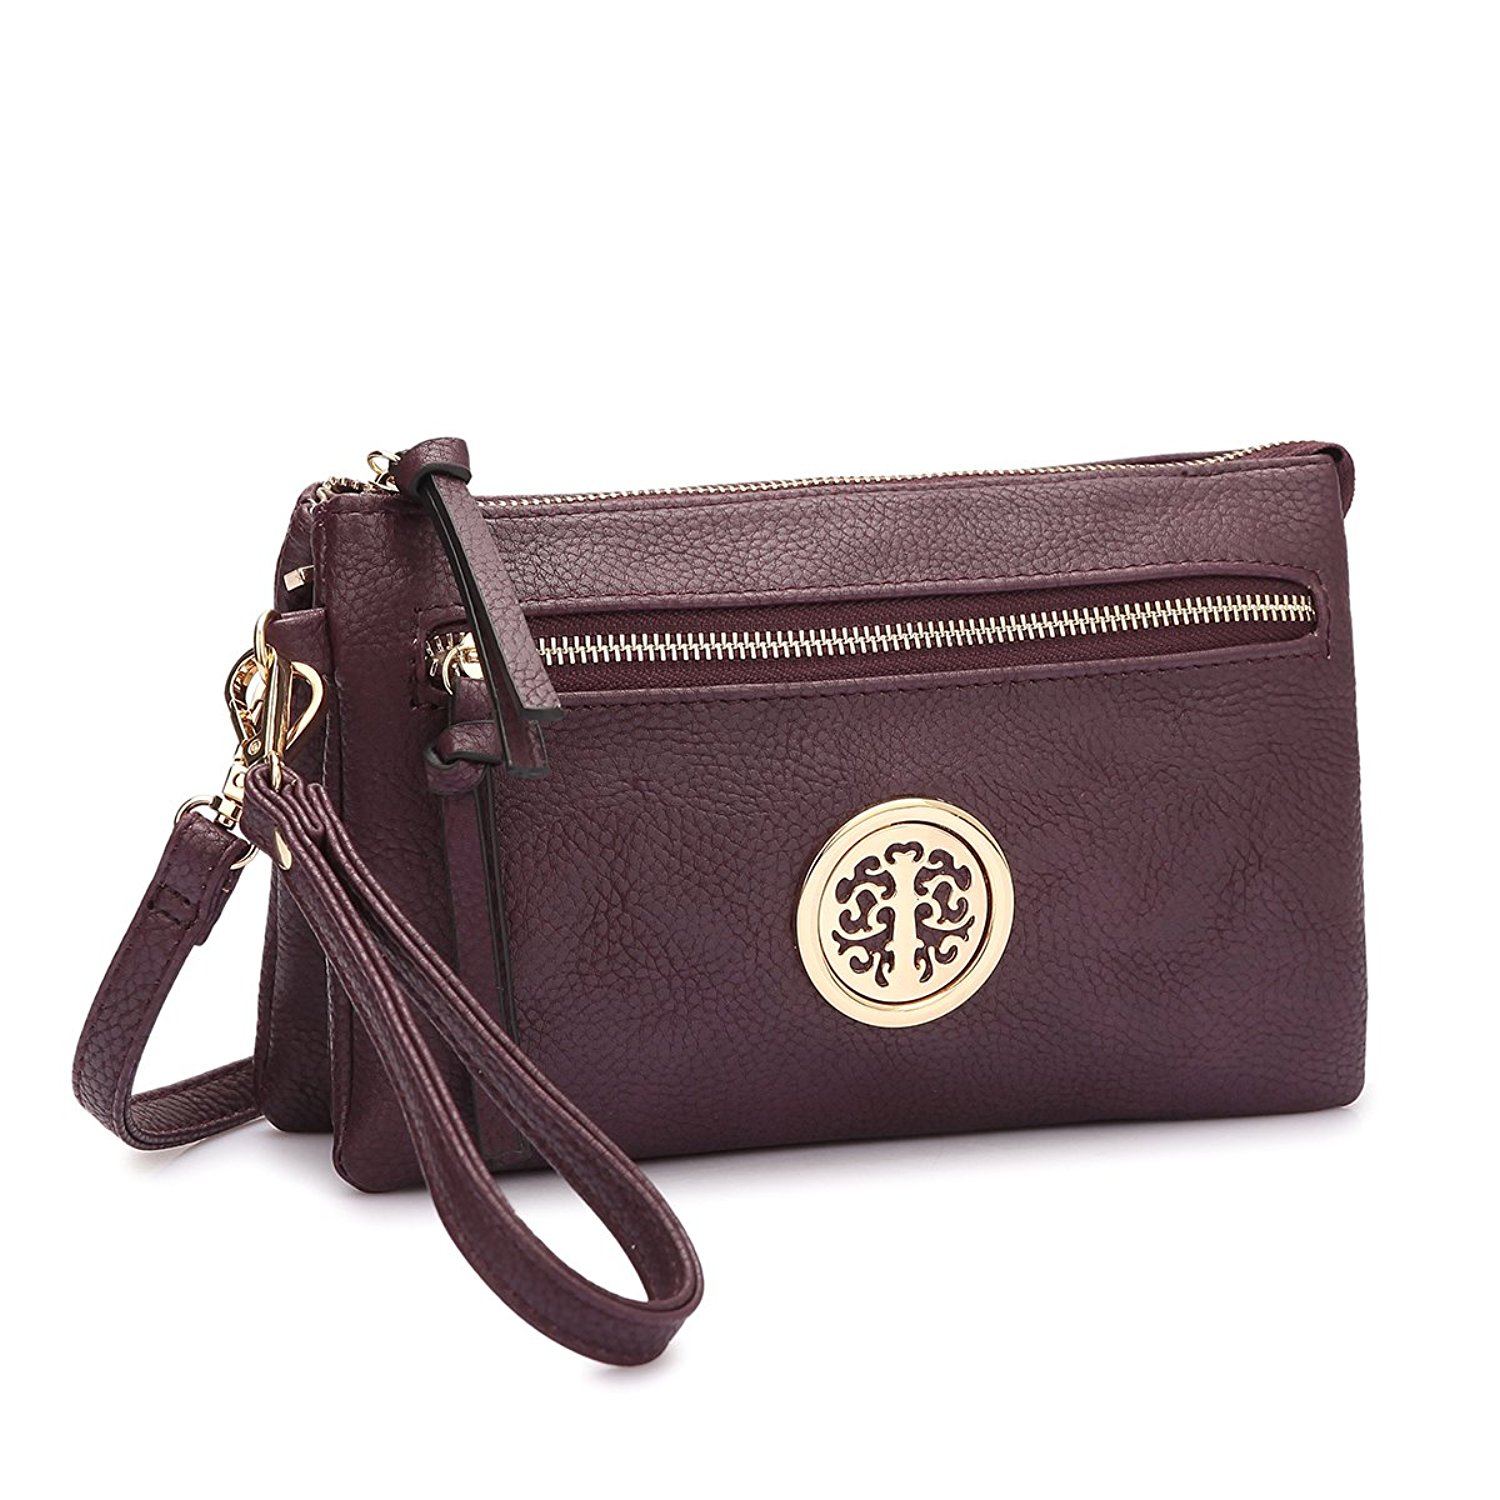 MMK Collection Fashion Crossbody Bag ~Messenger Purse~Crossbody Bag for Women~Designer Fashion Wristlet Wallet Multi Pocket Clutch Purse (MA-18-7217 Purple)